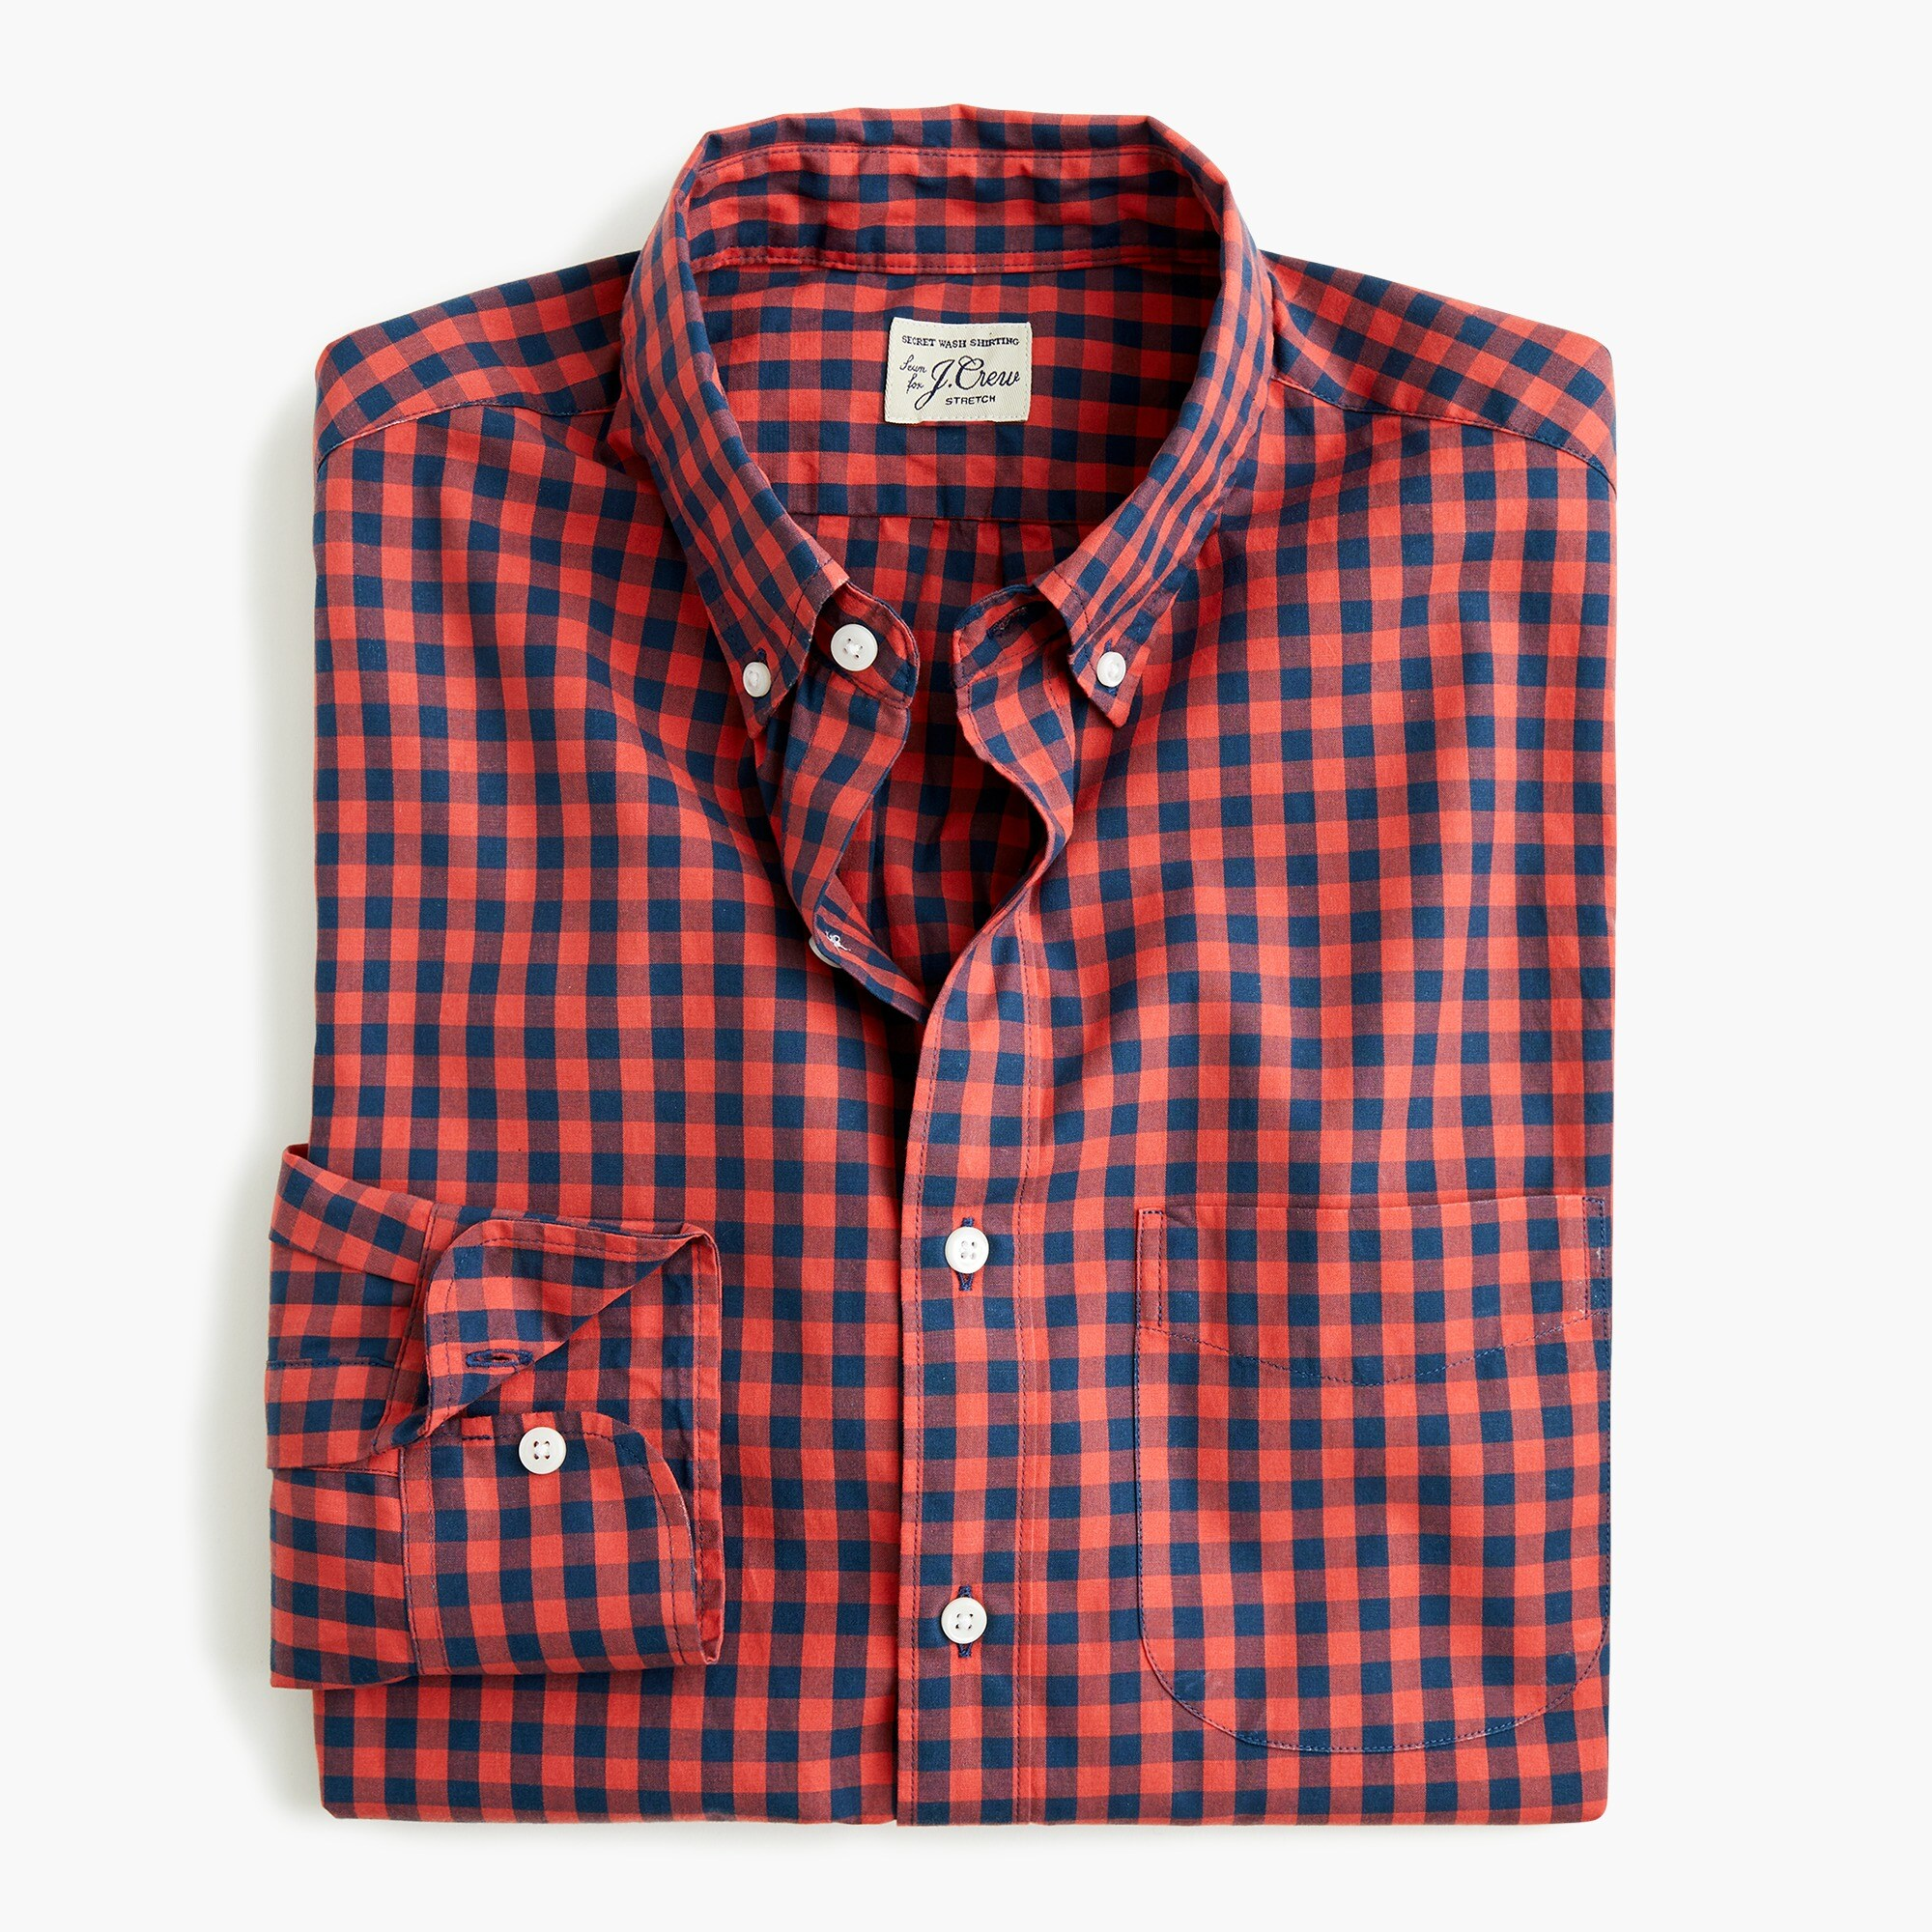 Stretch Secret Wash shirt in primary gingham